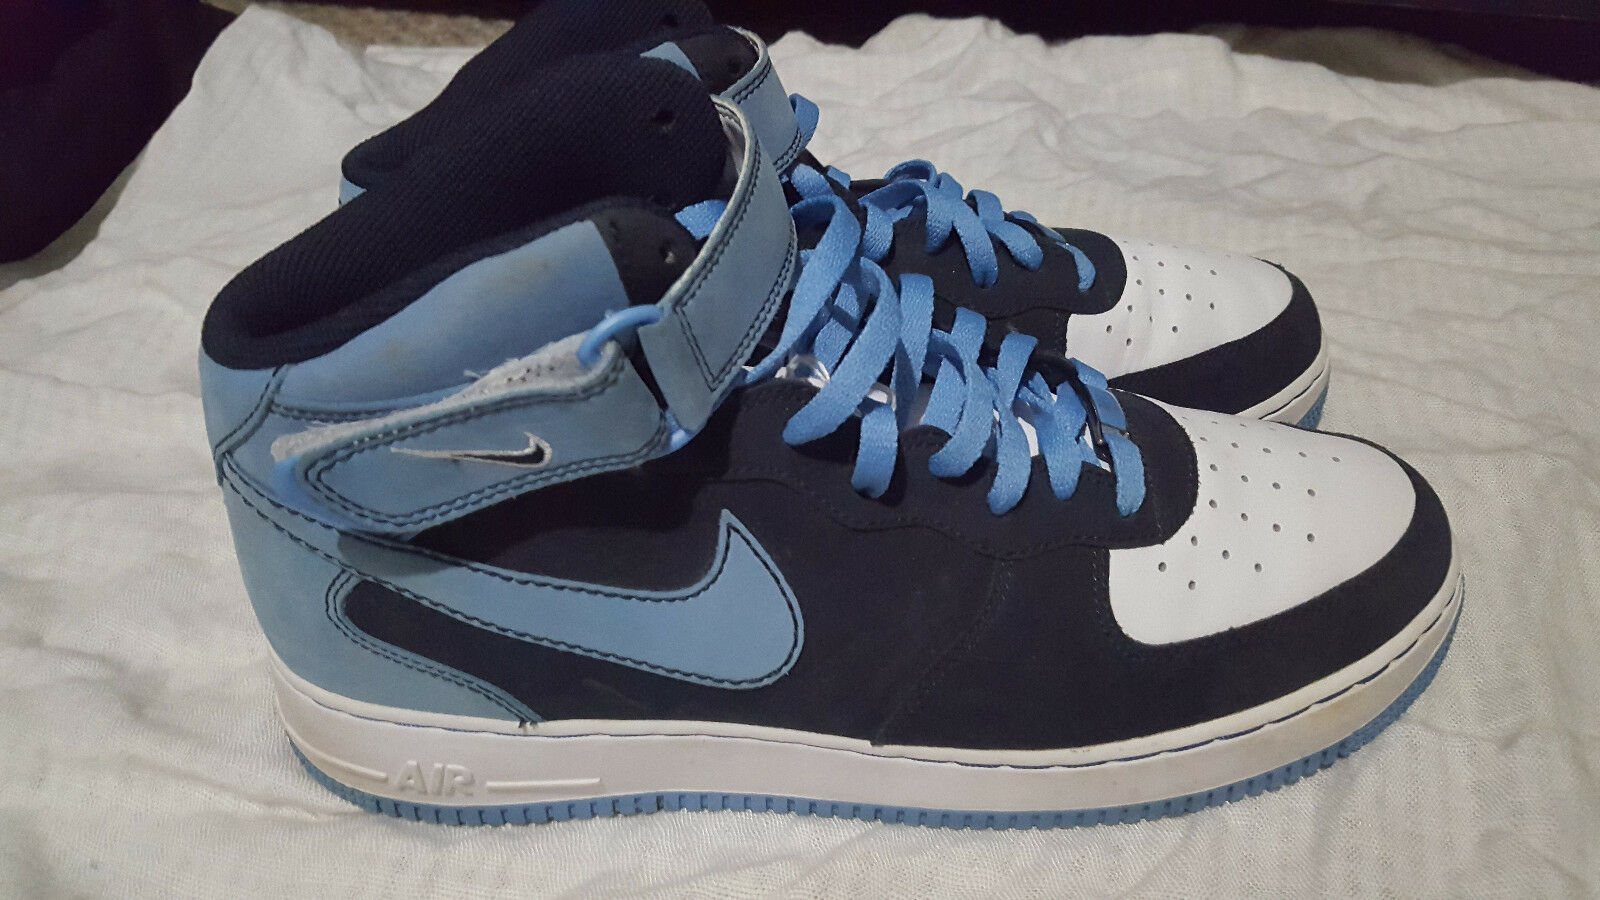 Nike Air Force1 07 Mid Shoes 315123-441 Obsidian University Blue White US Comfortable